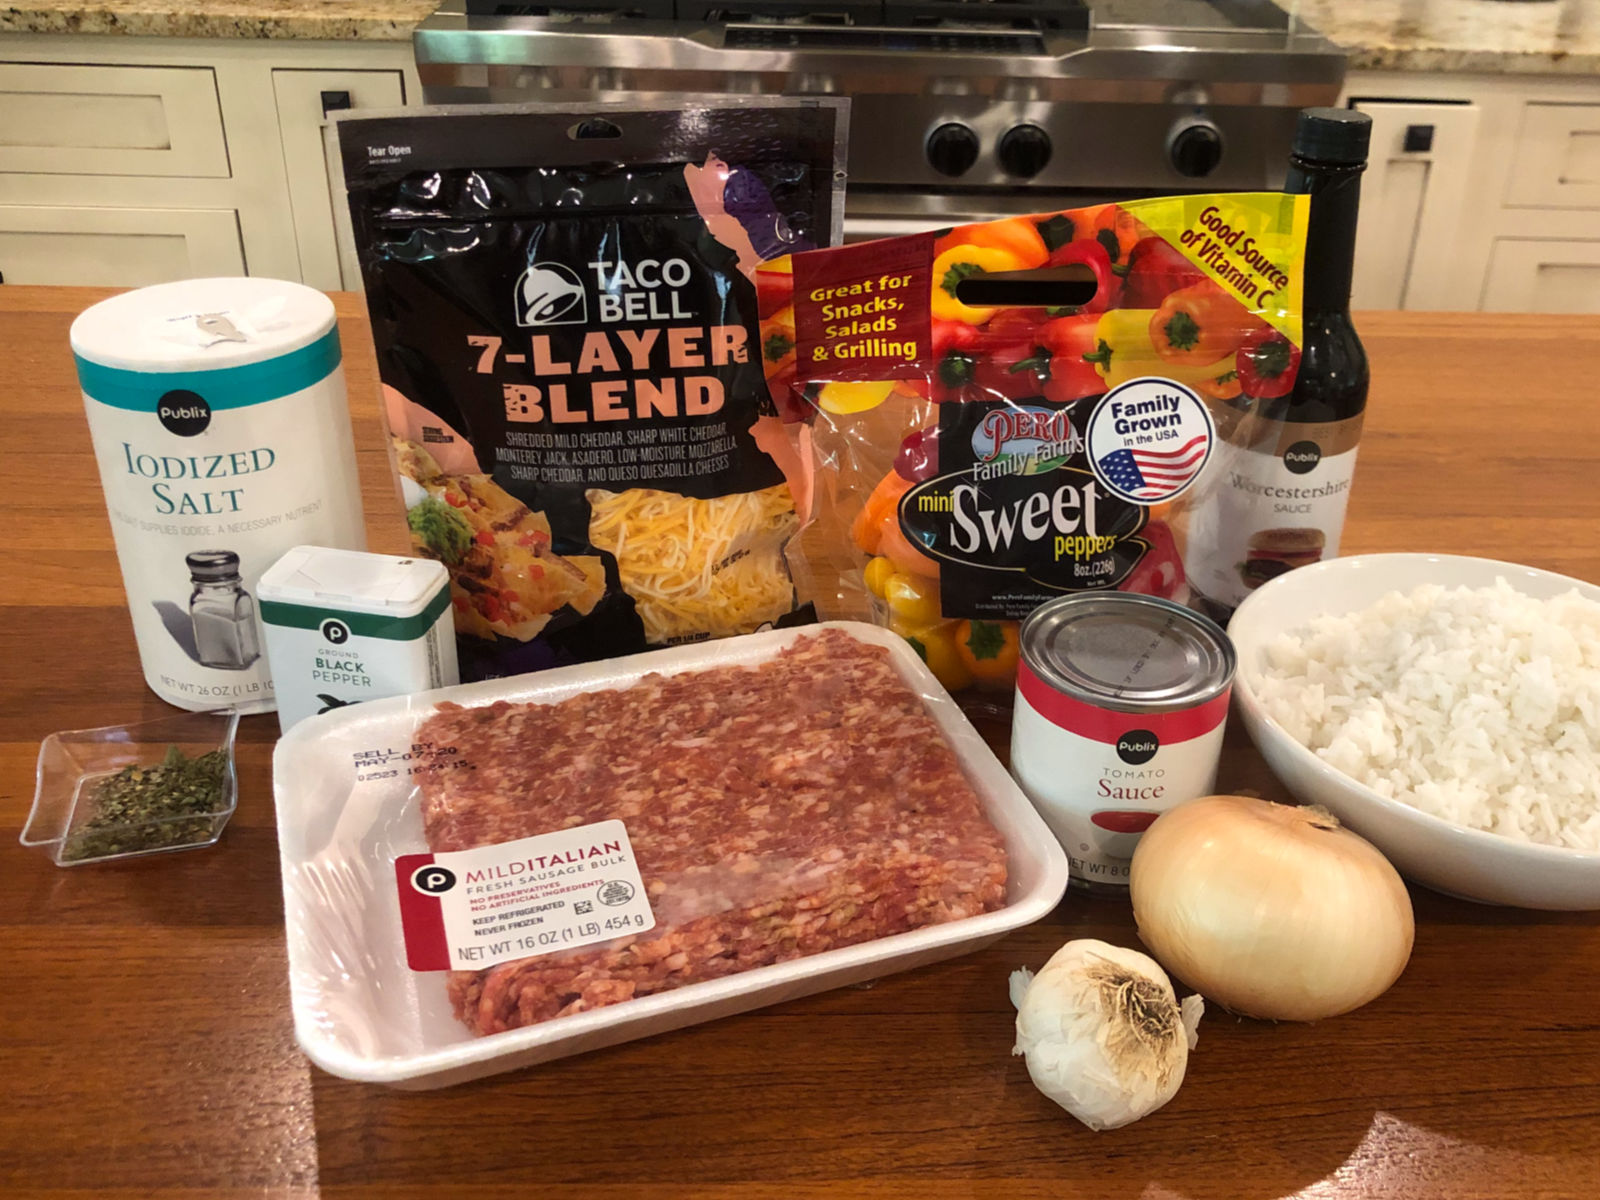 Bell Pepper Casserole - Super Meal To Go With The Sales At Publix on I Heart Publix